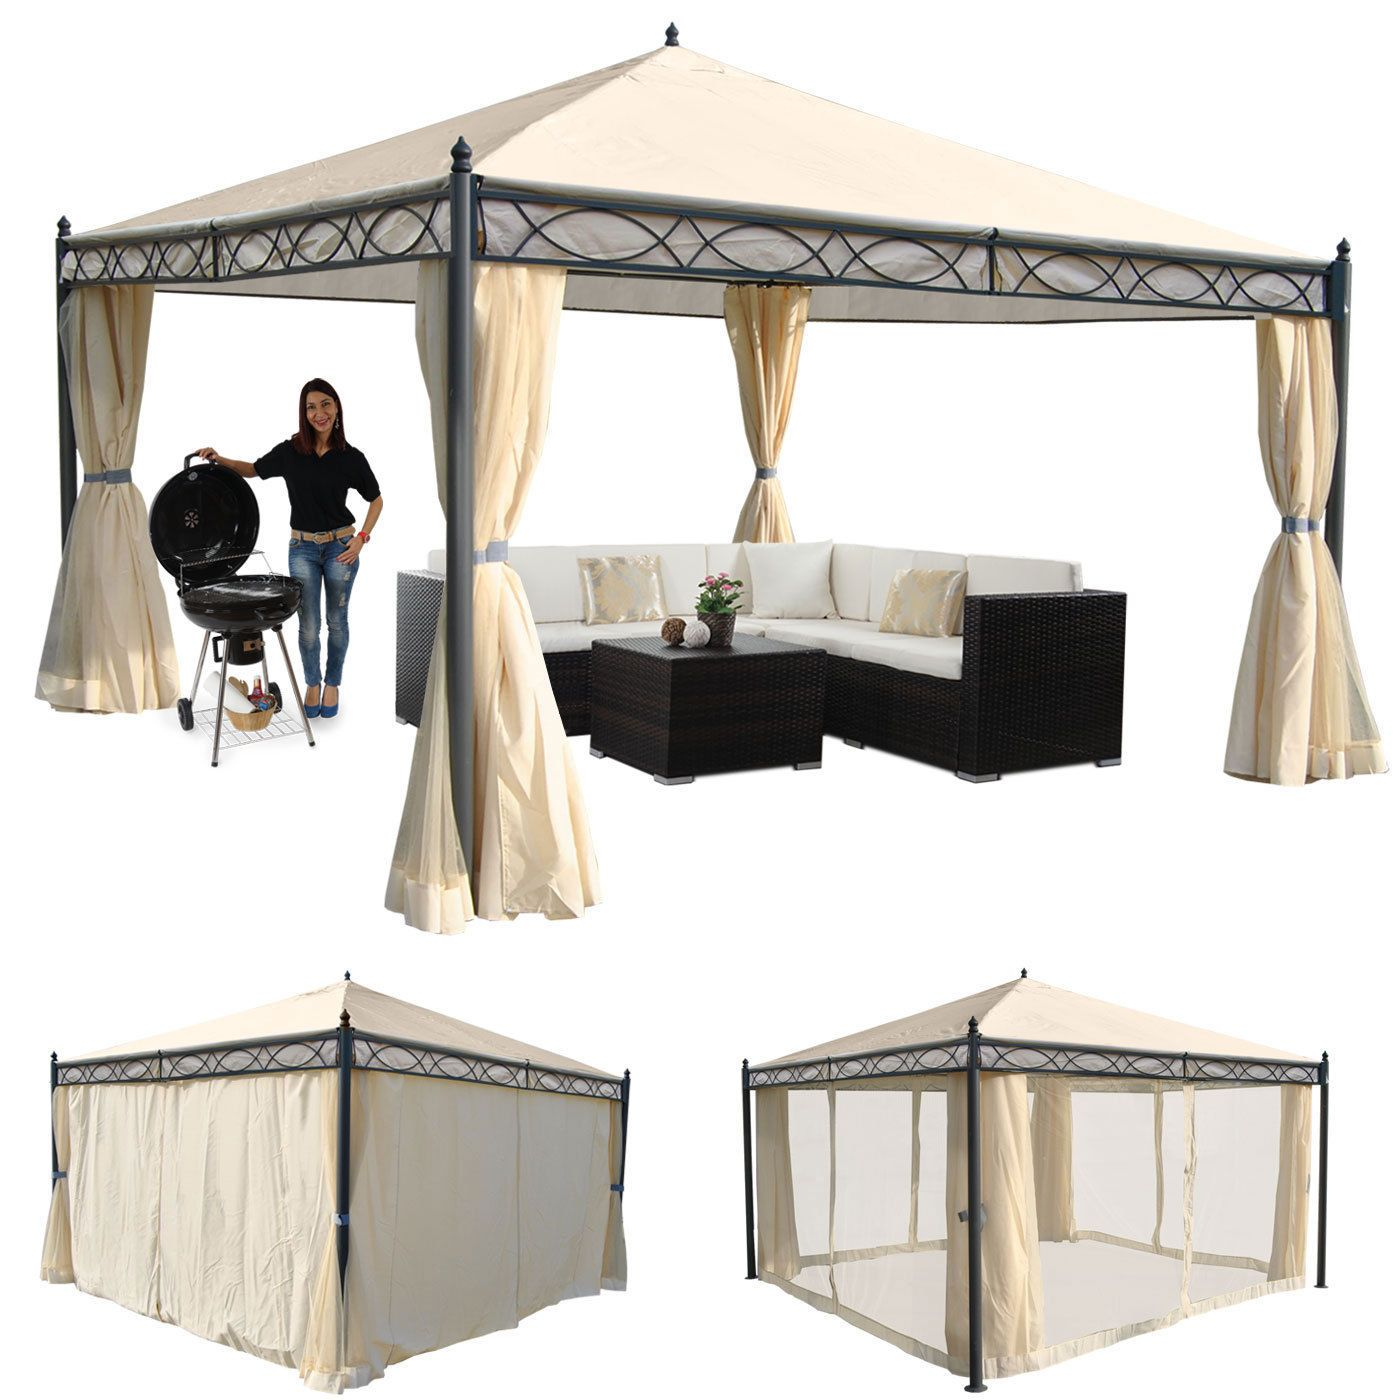 pergola cadiz garten pavillon 7cm gestell mit seitenwand. Black Bedroom Furniture Sets. Home Design Ideas